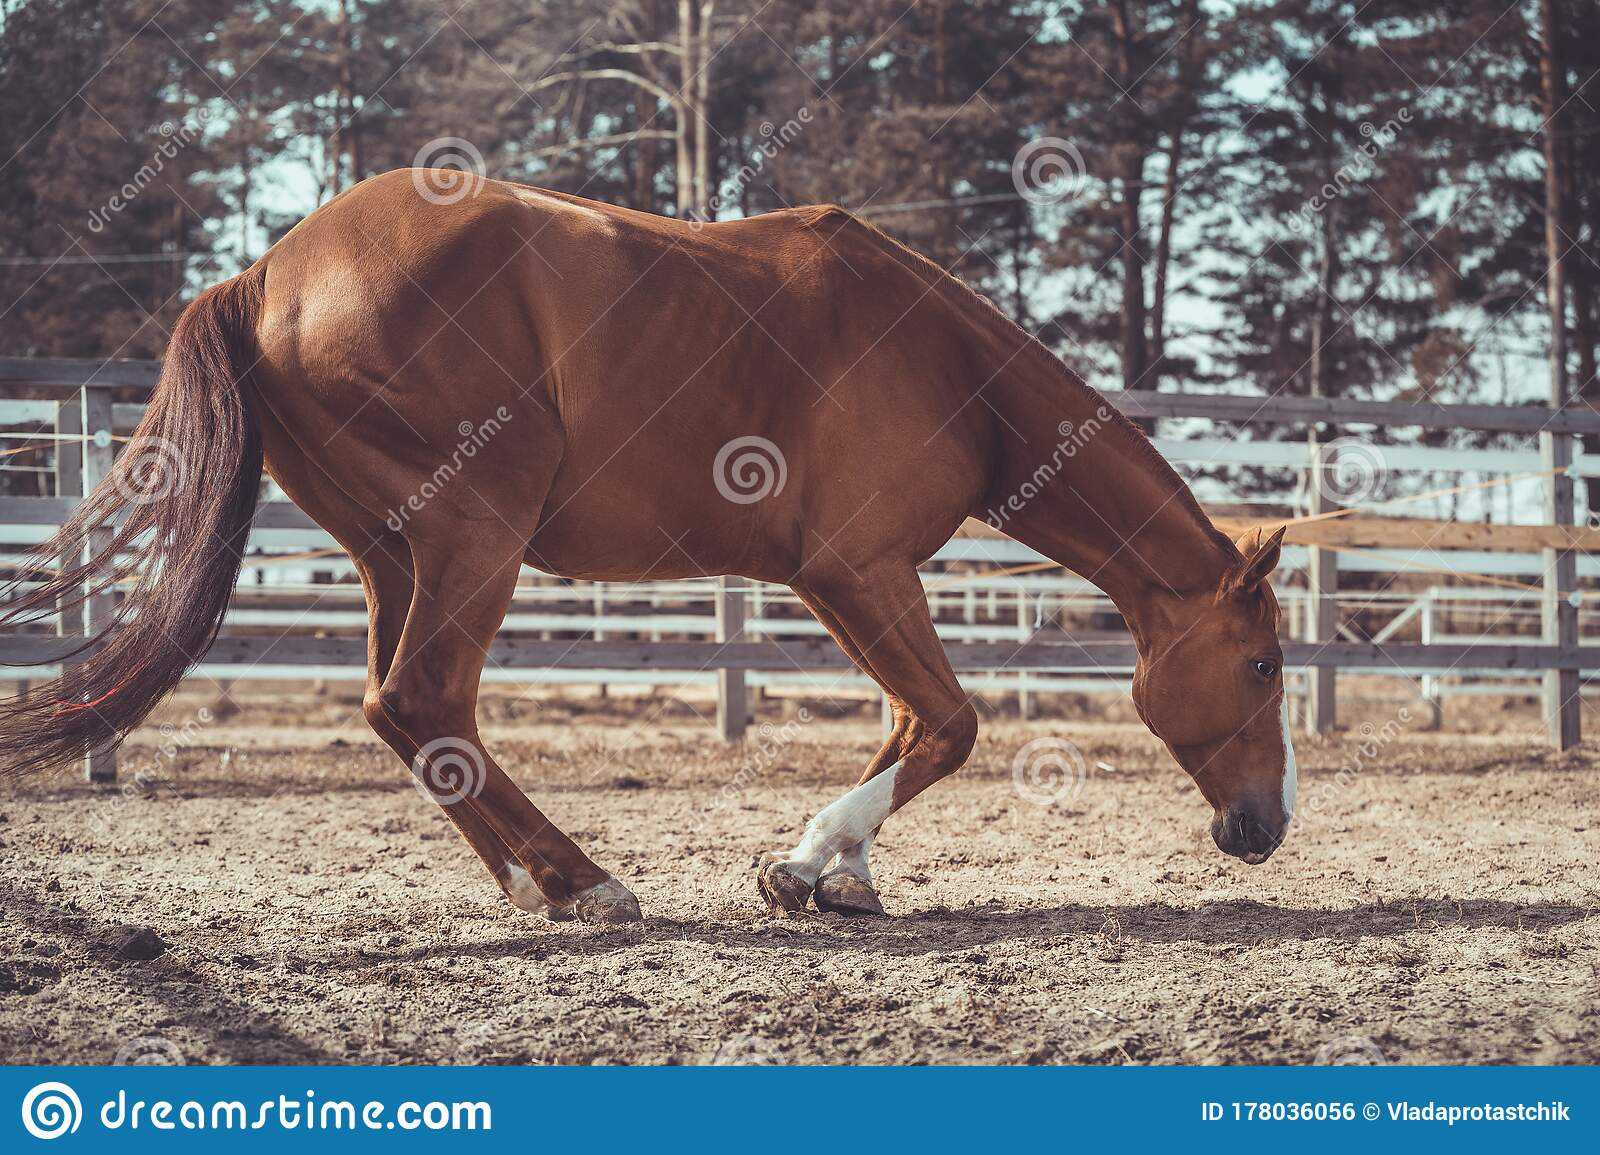 Funny Young Chestnut Budyonny Gelding Horse Going To Lay In Paddock In Warm Spring Daytime Stock Photo Image Of Stable Equine 178036056